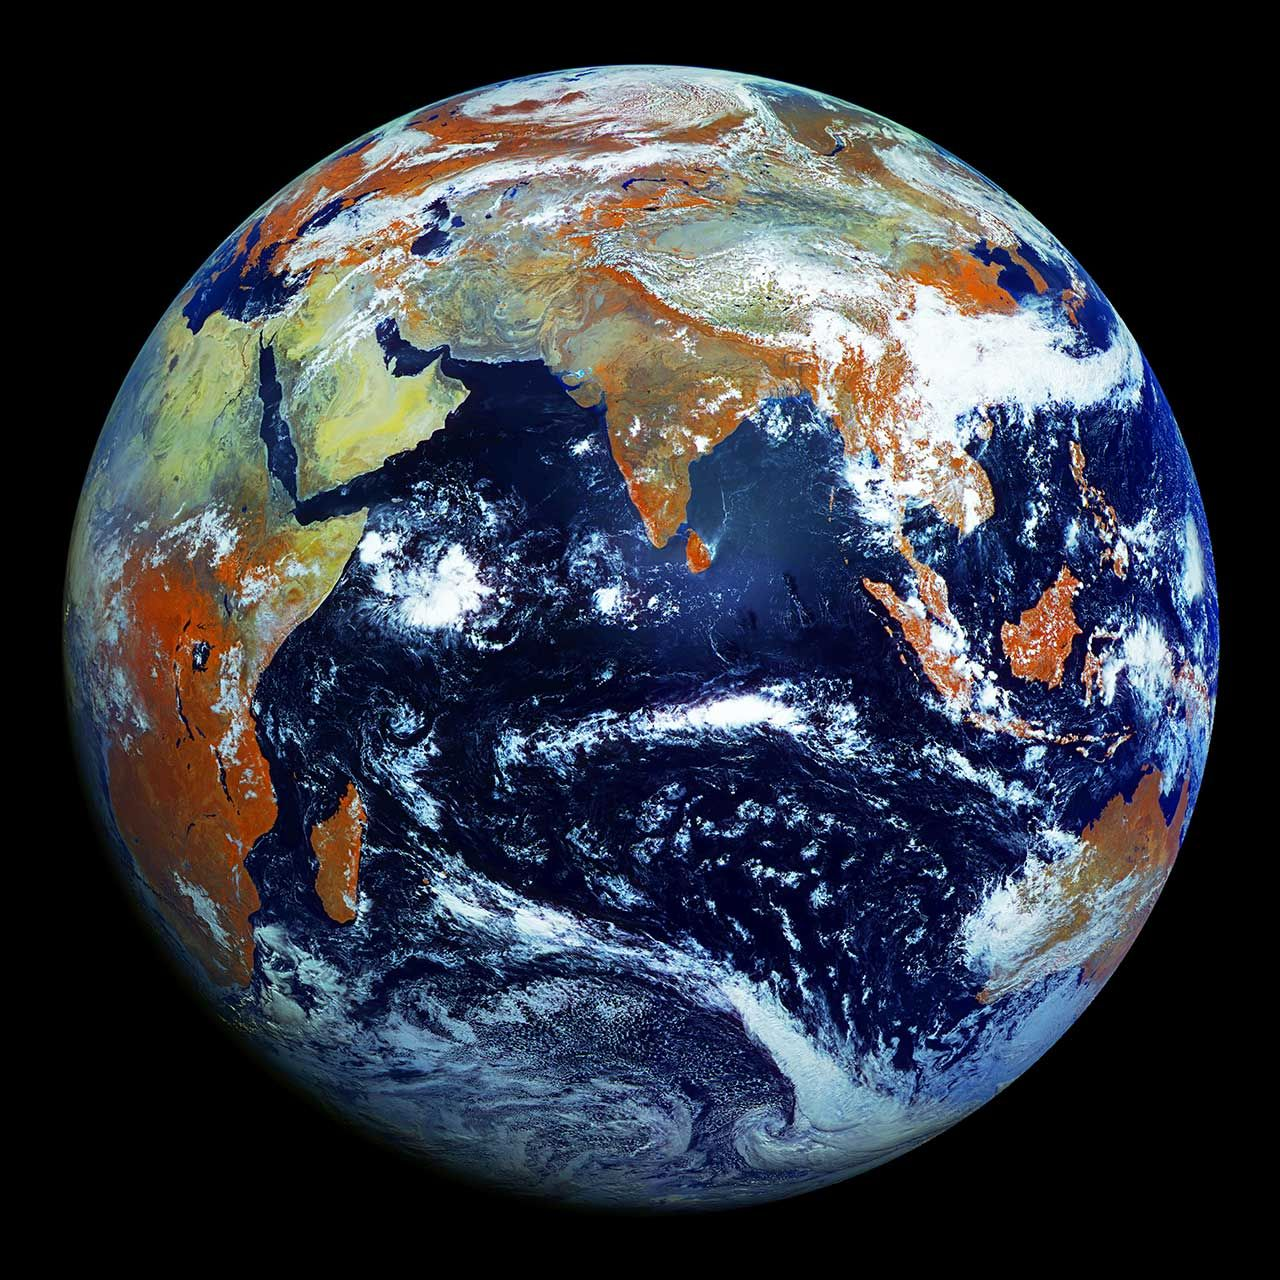 """Photo of Earth, taken by the russian weather satellite """"Electro-L"""", 36,000 kilometers above the equator."""